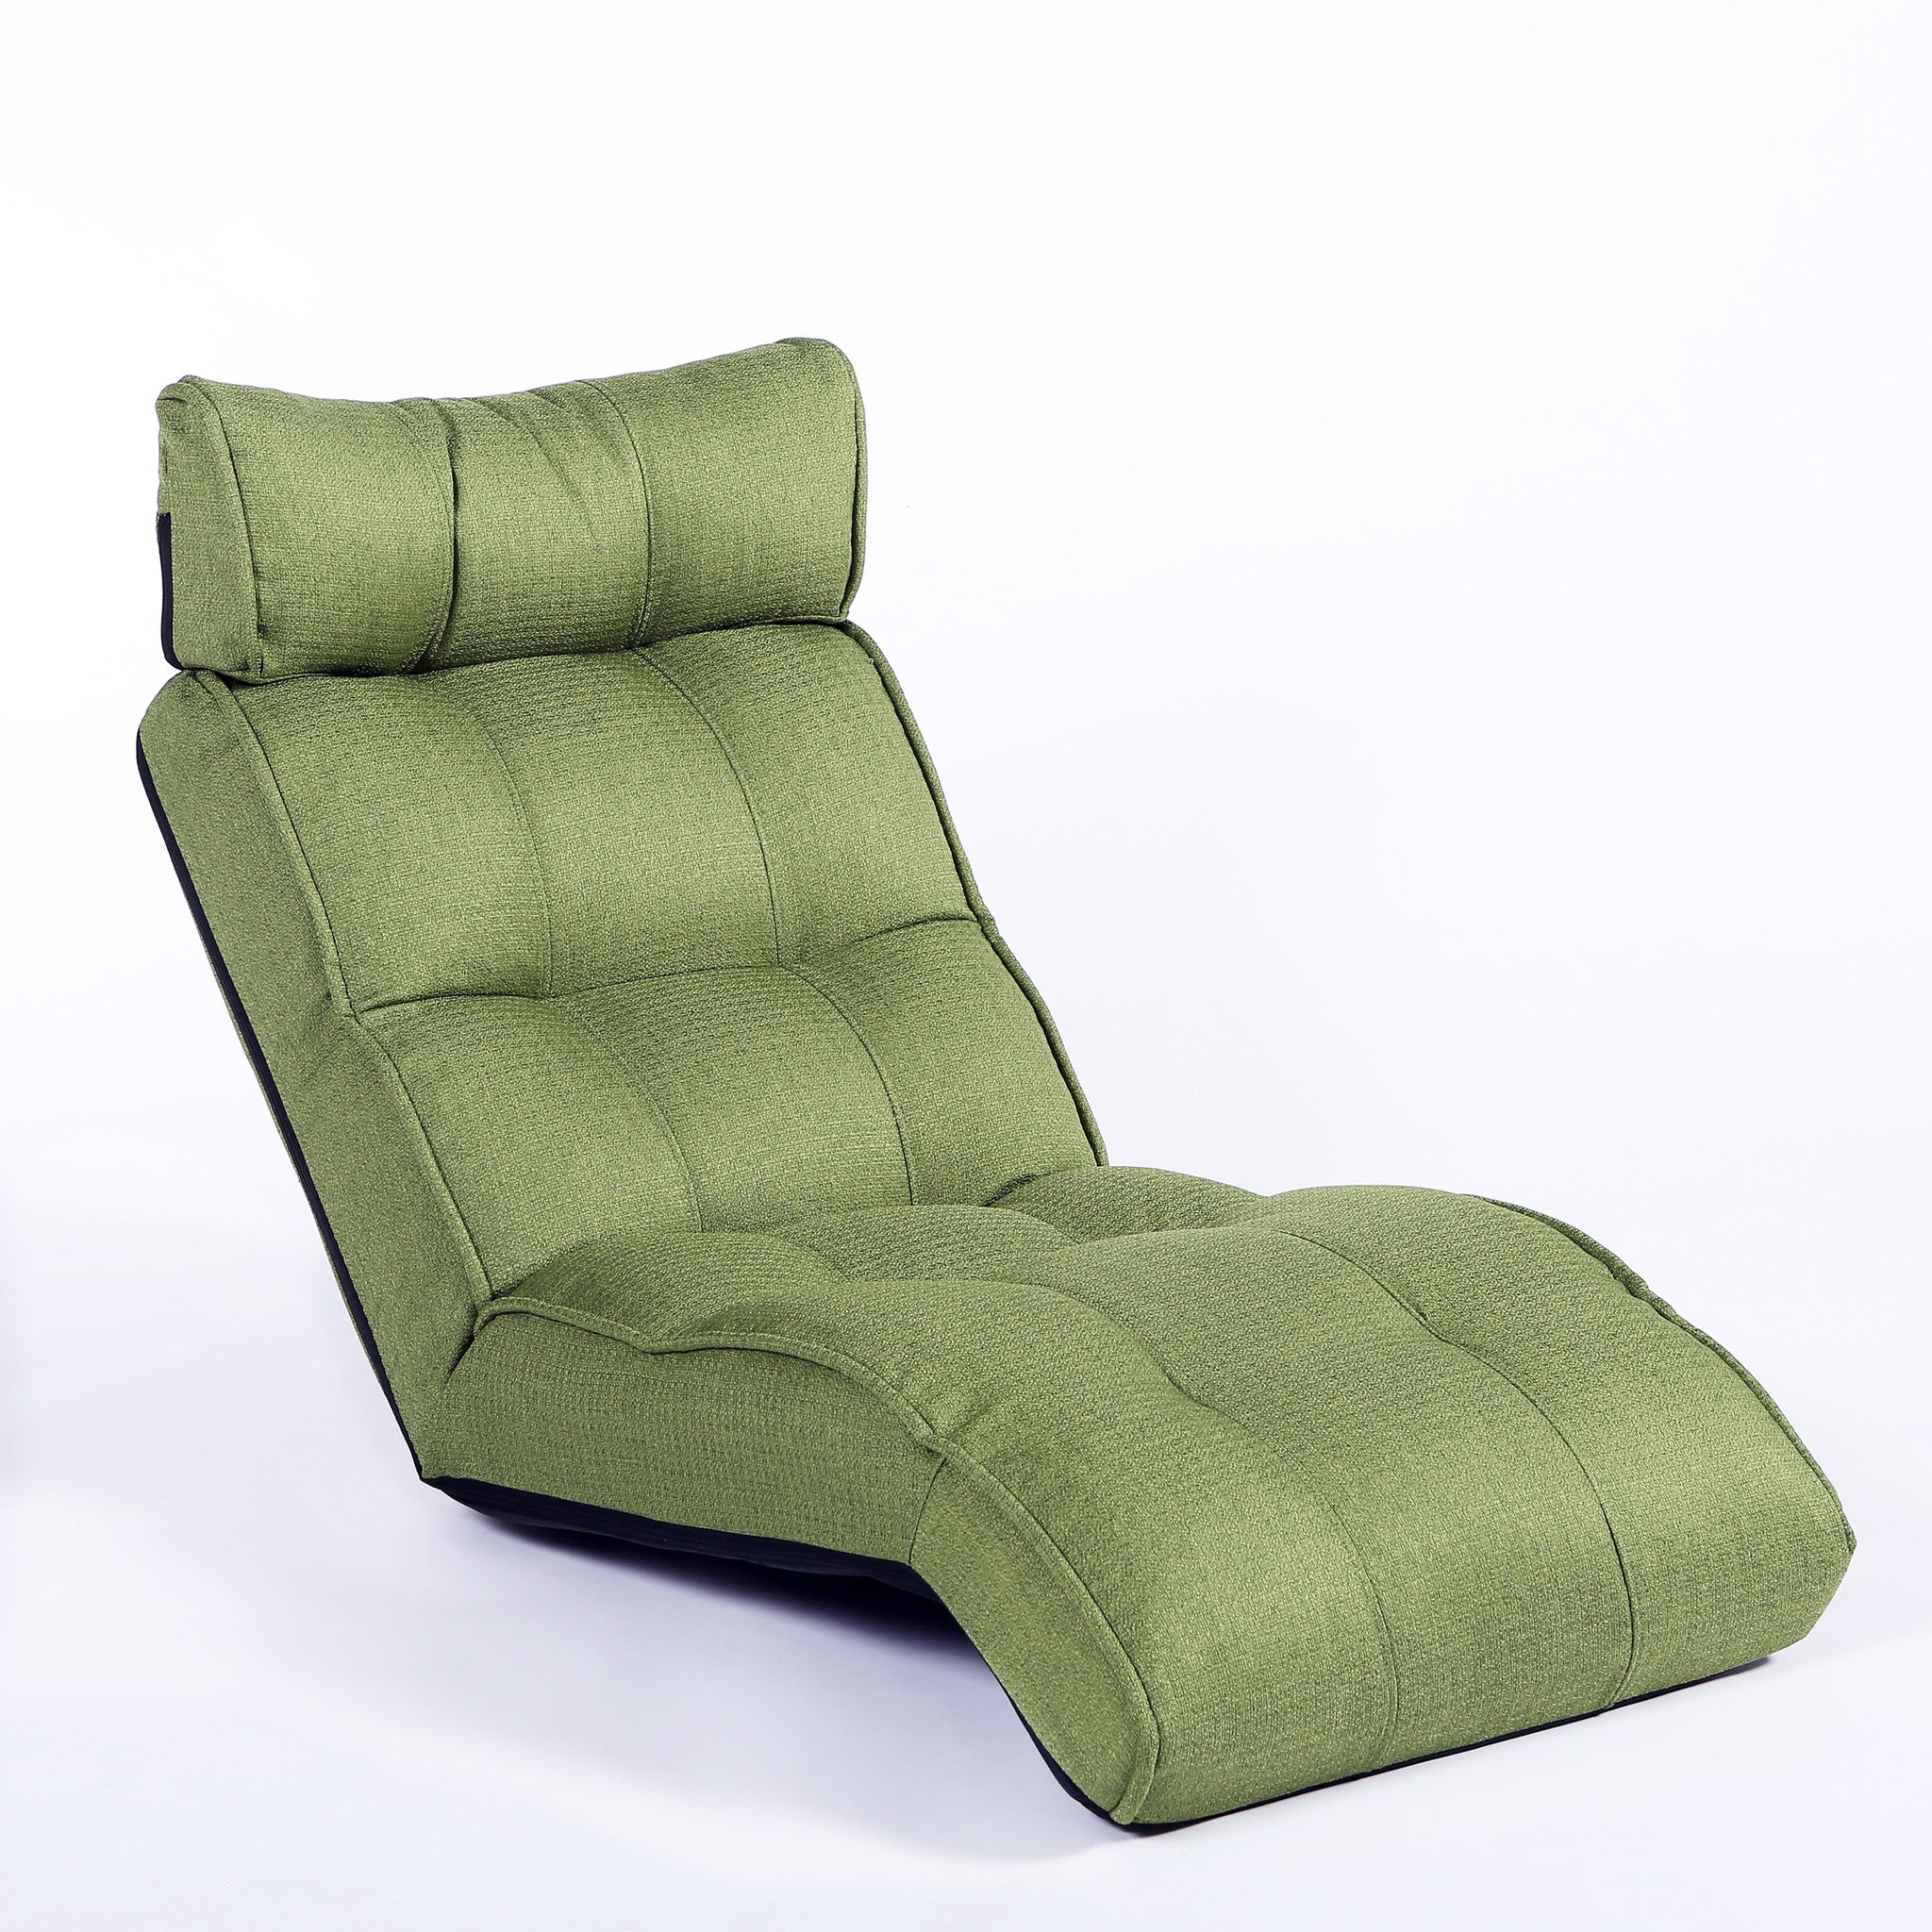 and wing sofa adrian furniture reupholstery chairs mod pearsall chair reupholster c